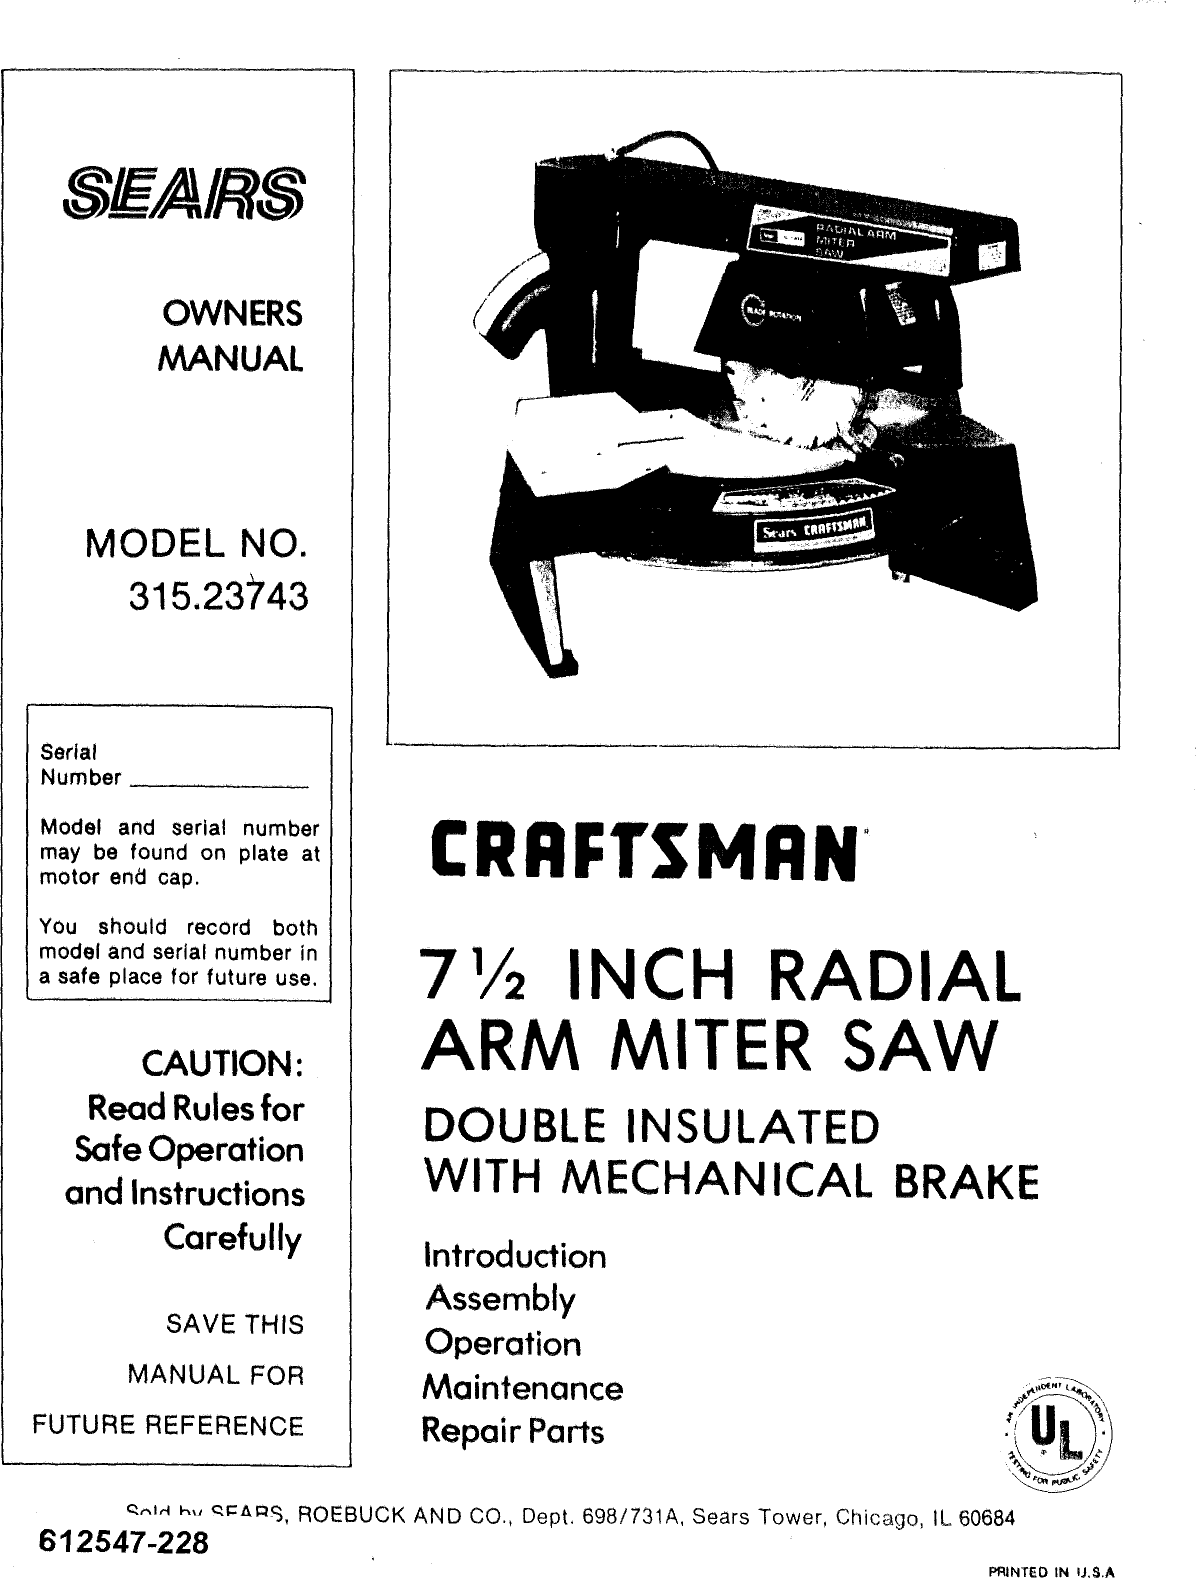 Craftsman 31523743 User Manual Radial Arm Miter Saw